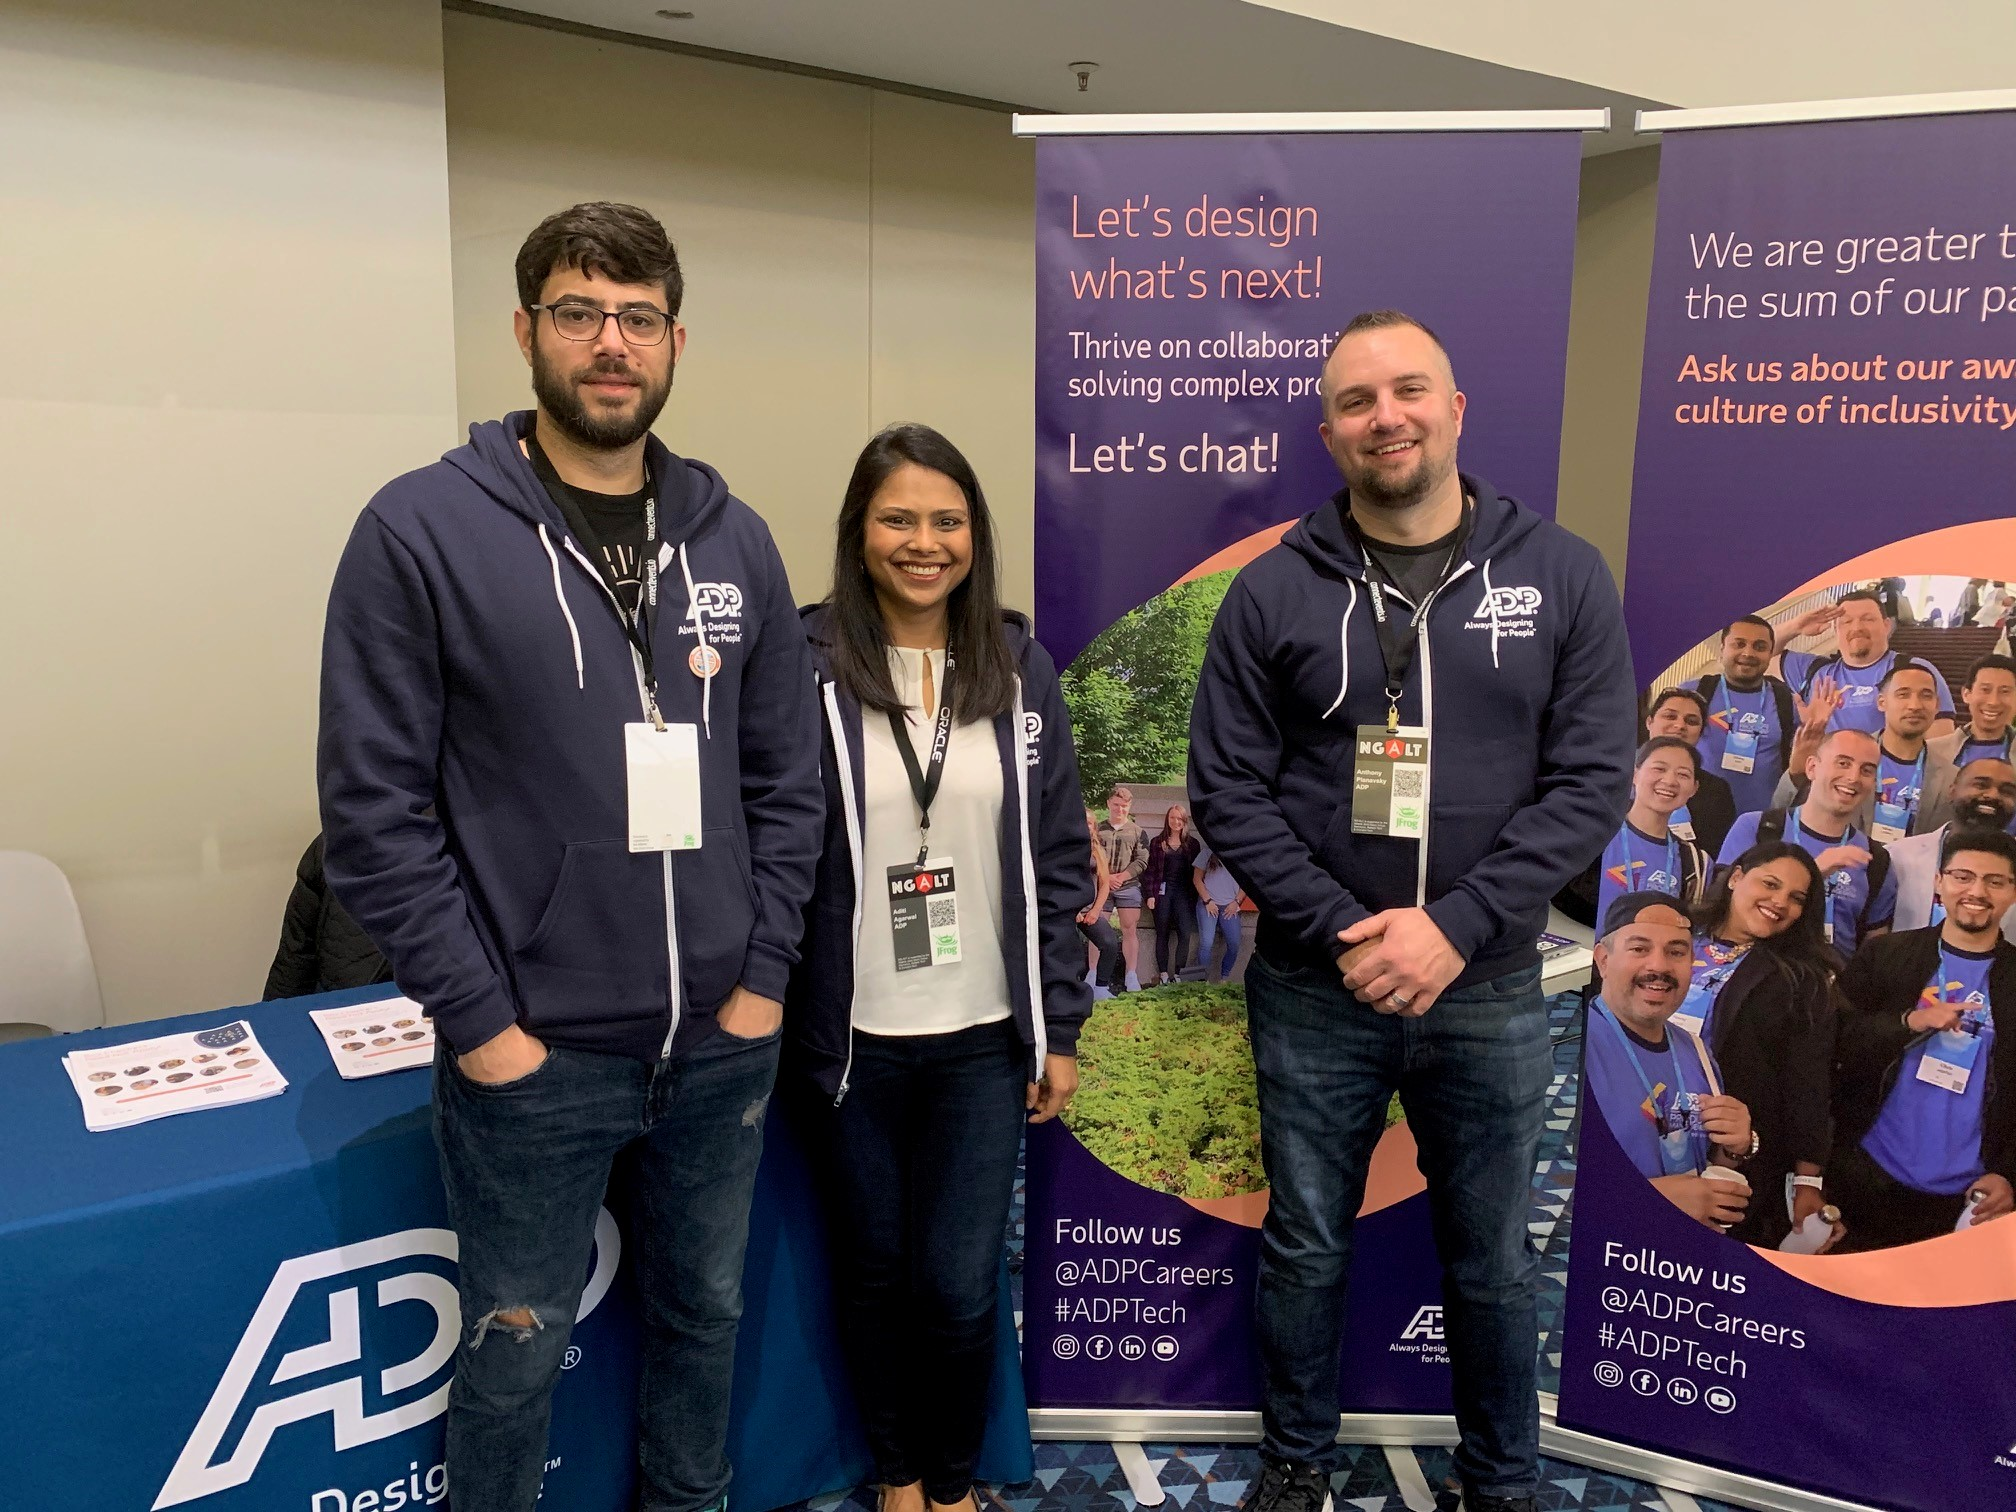 3 ADP employees in front of their event display booth